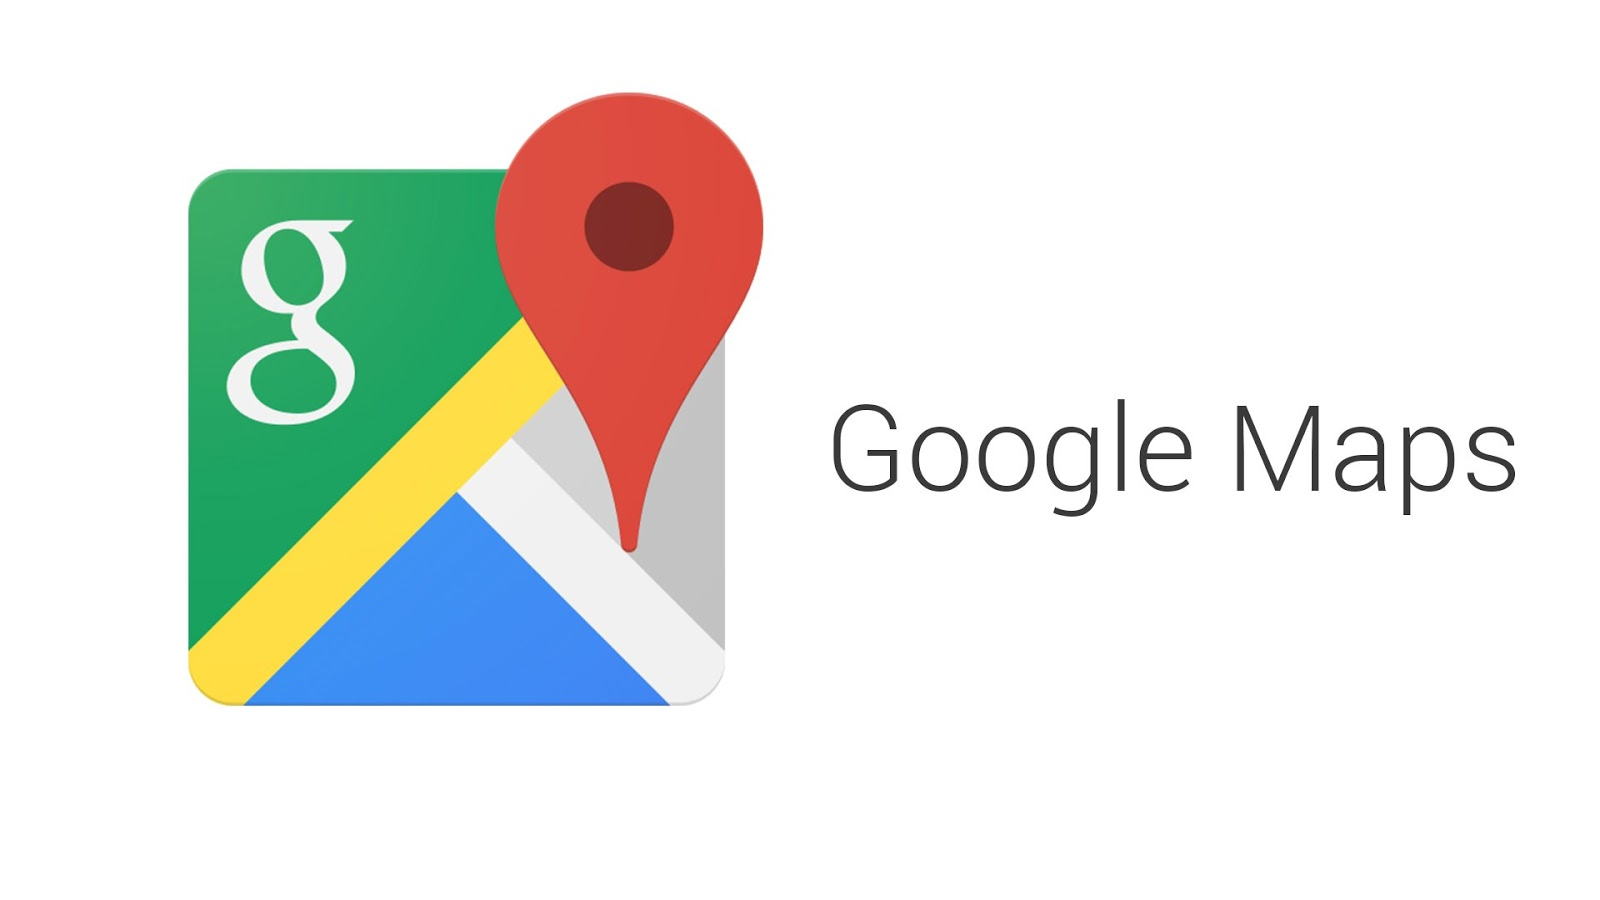 7 Best Android Apps 2016 Google Map Play Store on google make map, google volume map, google hotel map, google move map, google drive map, google walk map, mac map, autocad map, google fish map, google love map, navigation map, google story map, google maps map, google sketch map, google run map, google earth map,